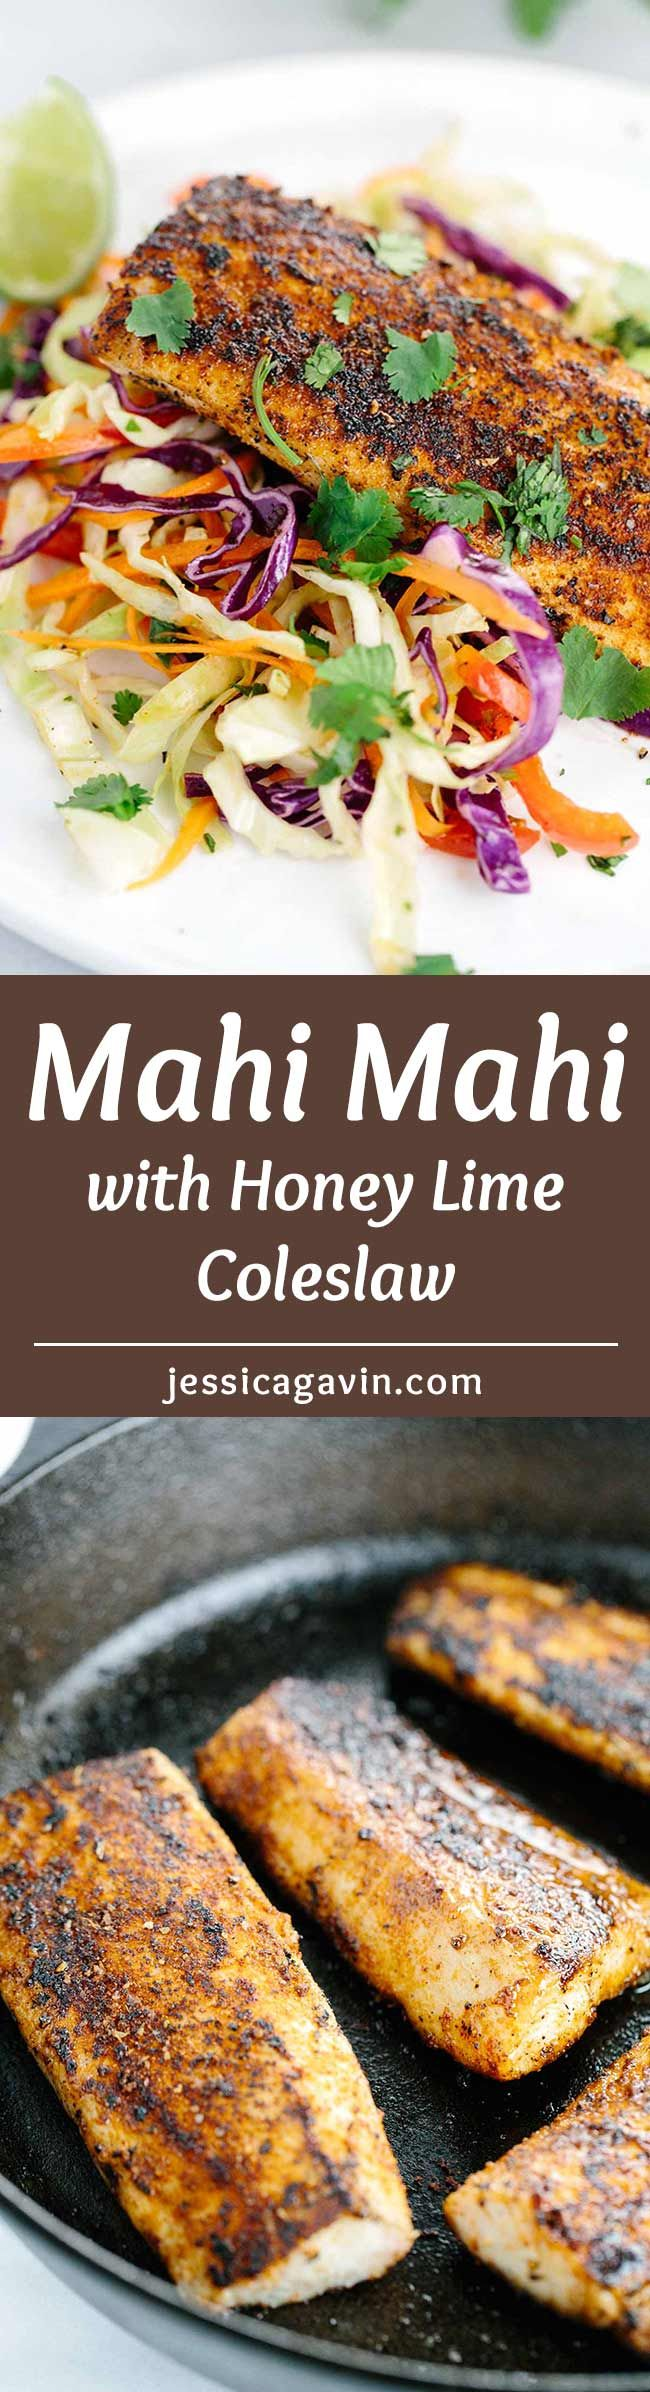 Pan Seared Mahi Mahi with Honey Lime Coleslaw - The fish in this recipe are coated with a blend of savory and sweet spices and each fillet is served with a crunchy and refreshing honey lime coleslaw. via @foodiegavin